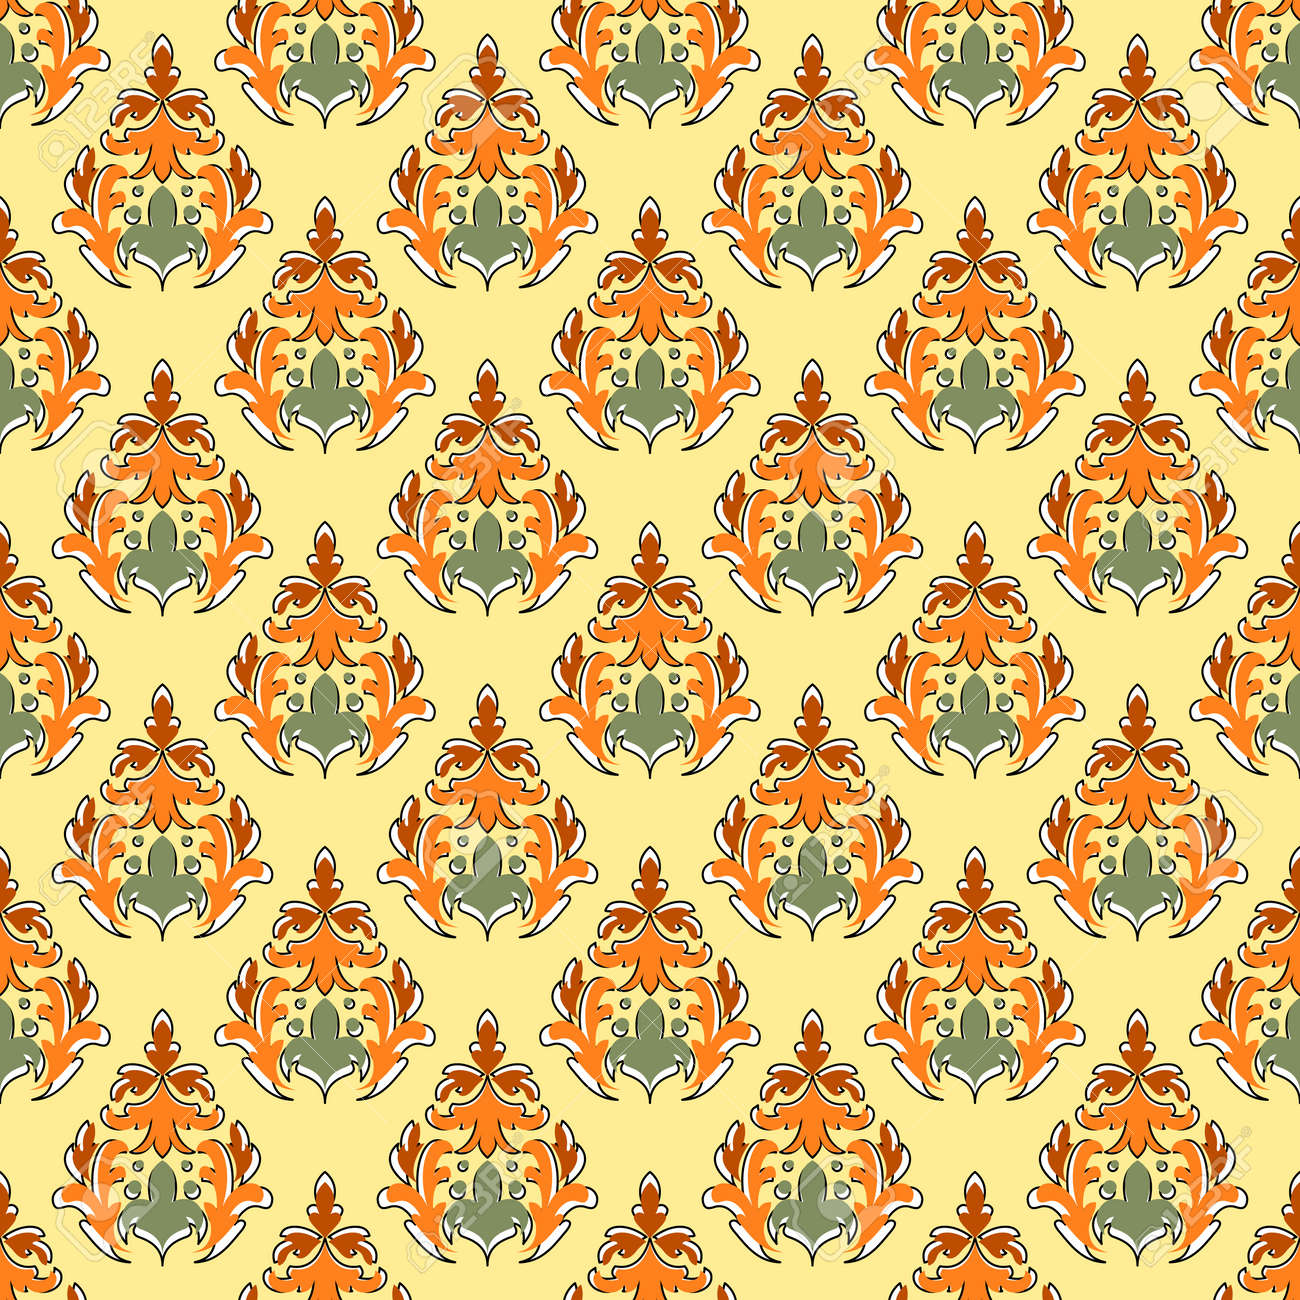 Abstract seamless wallpaper in the style of damask. Curly elements in yellow, orange and green colors. Great for decorating fabrics, textiles, gift wrapping, printed matter, interiors, advertising. - 173297021